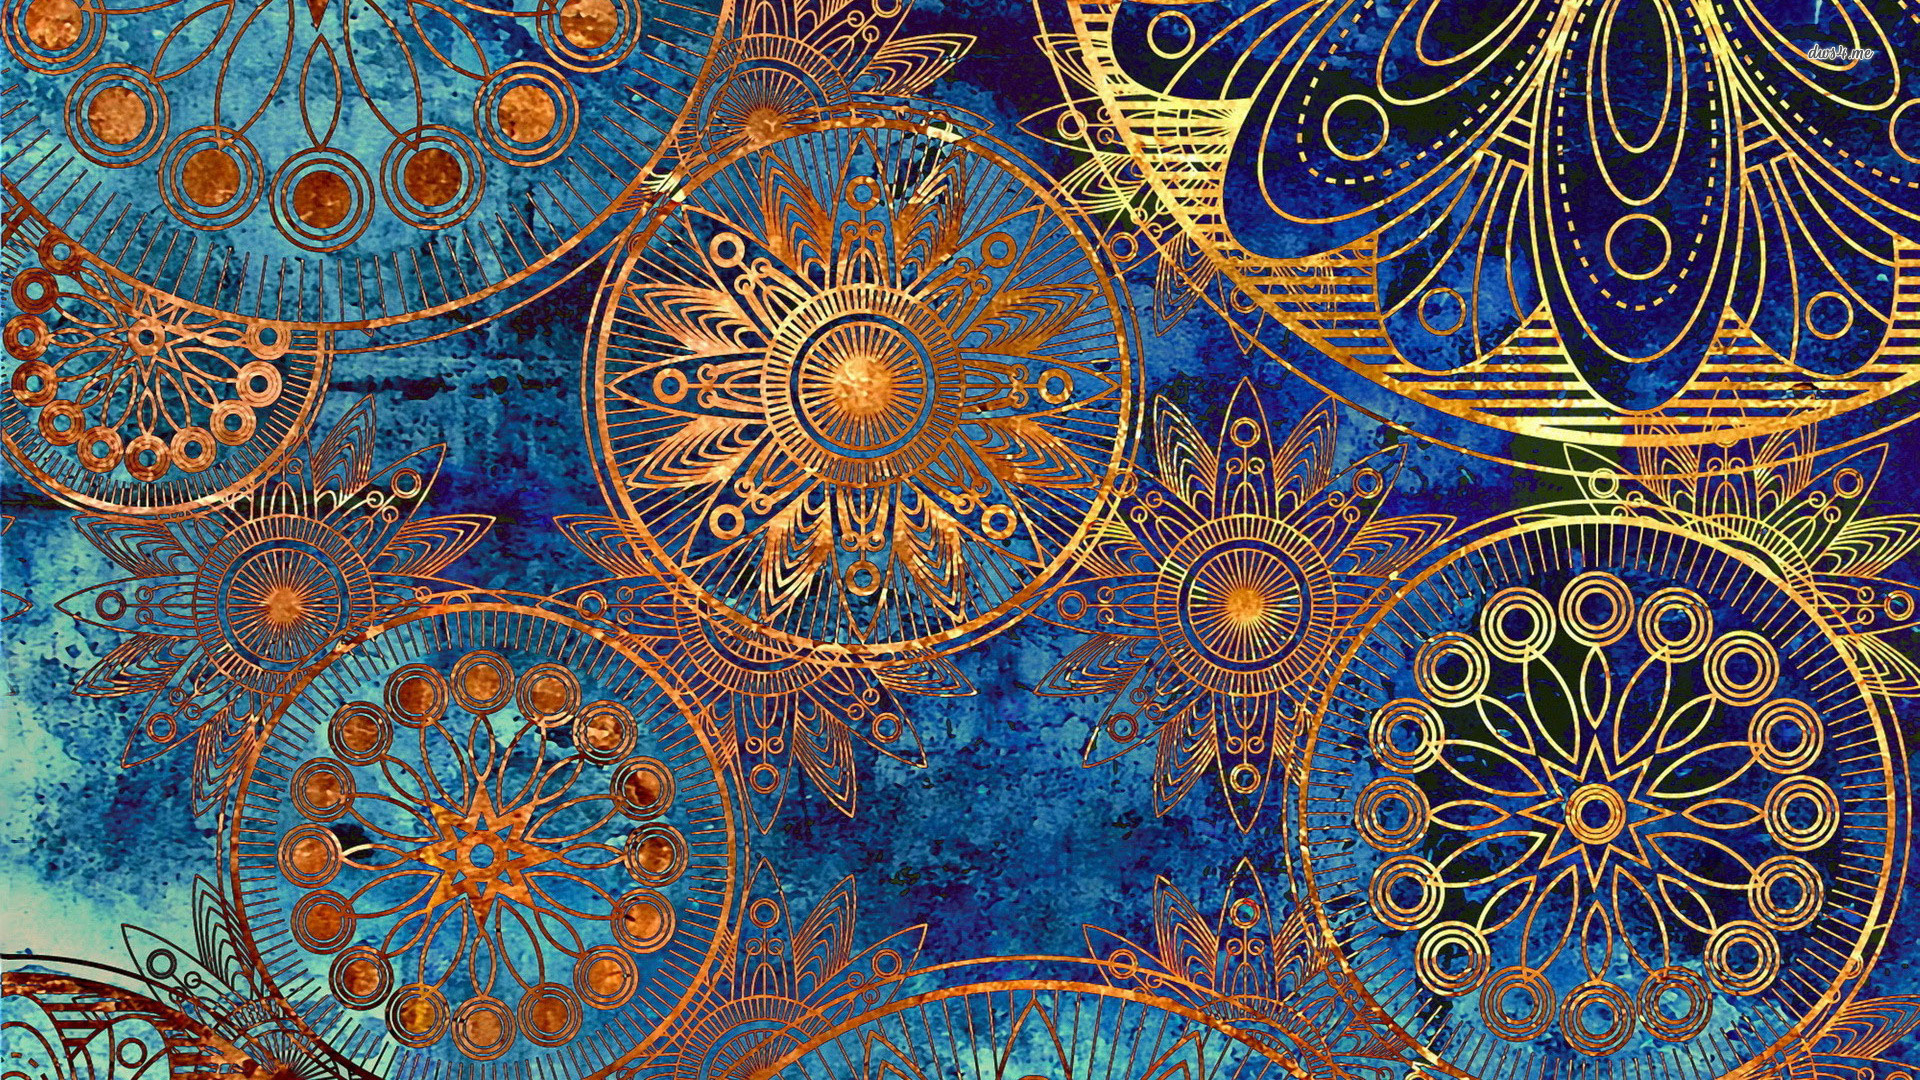 Boho Desktop Wallpaper Wallpapersafari